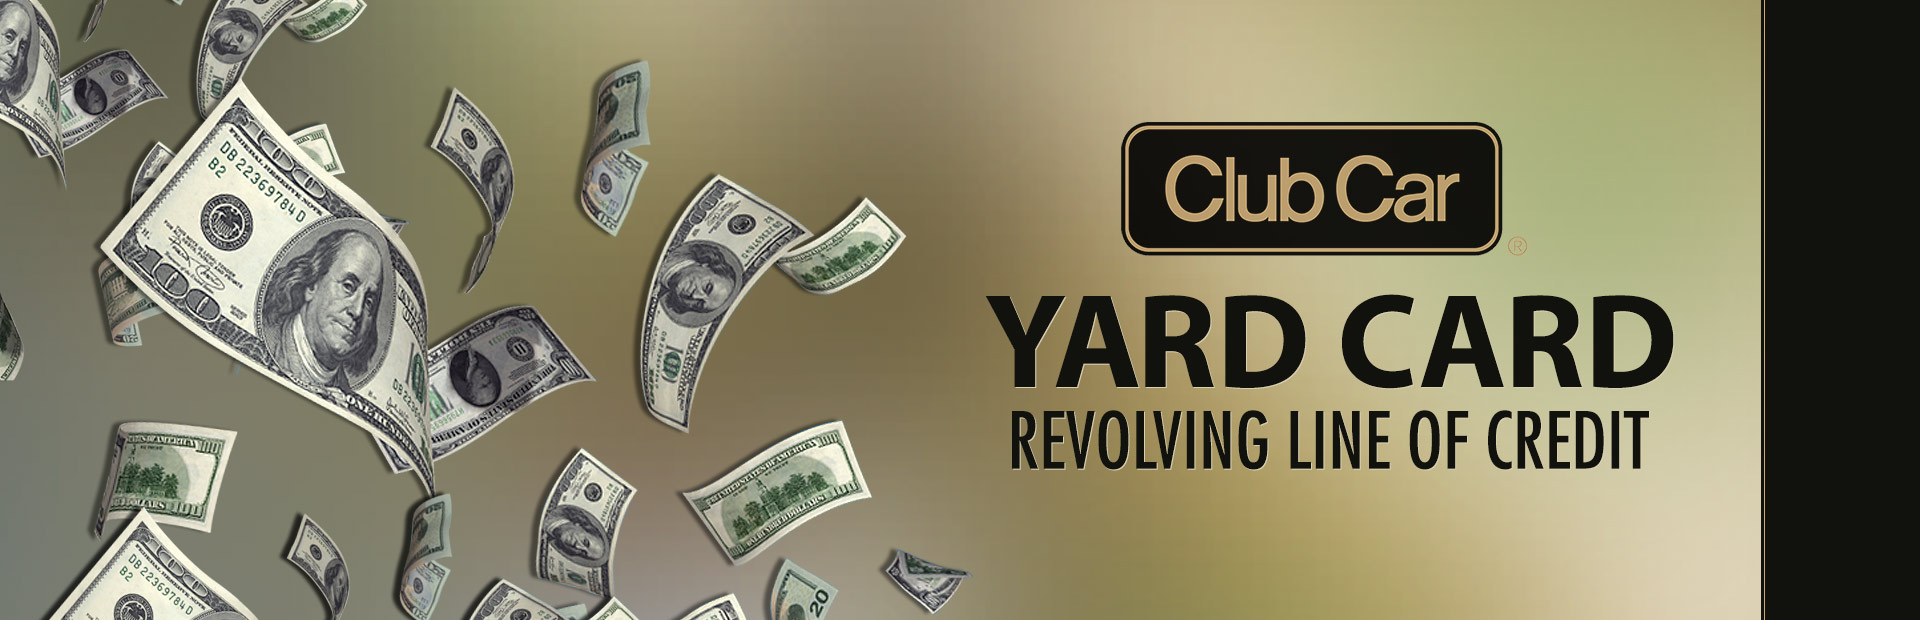 Club Car: Yard Card Financing